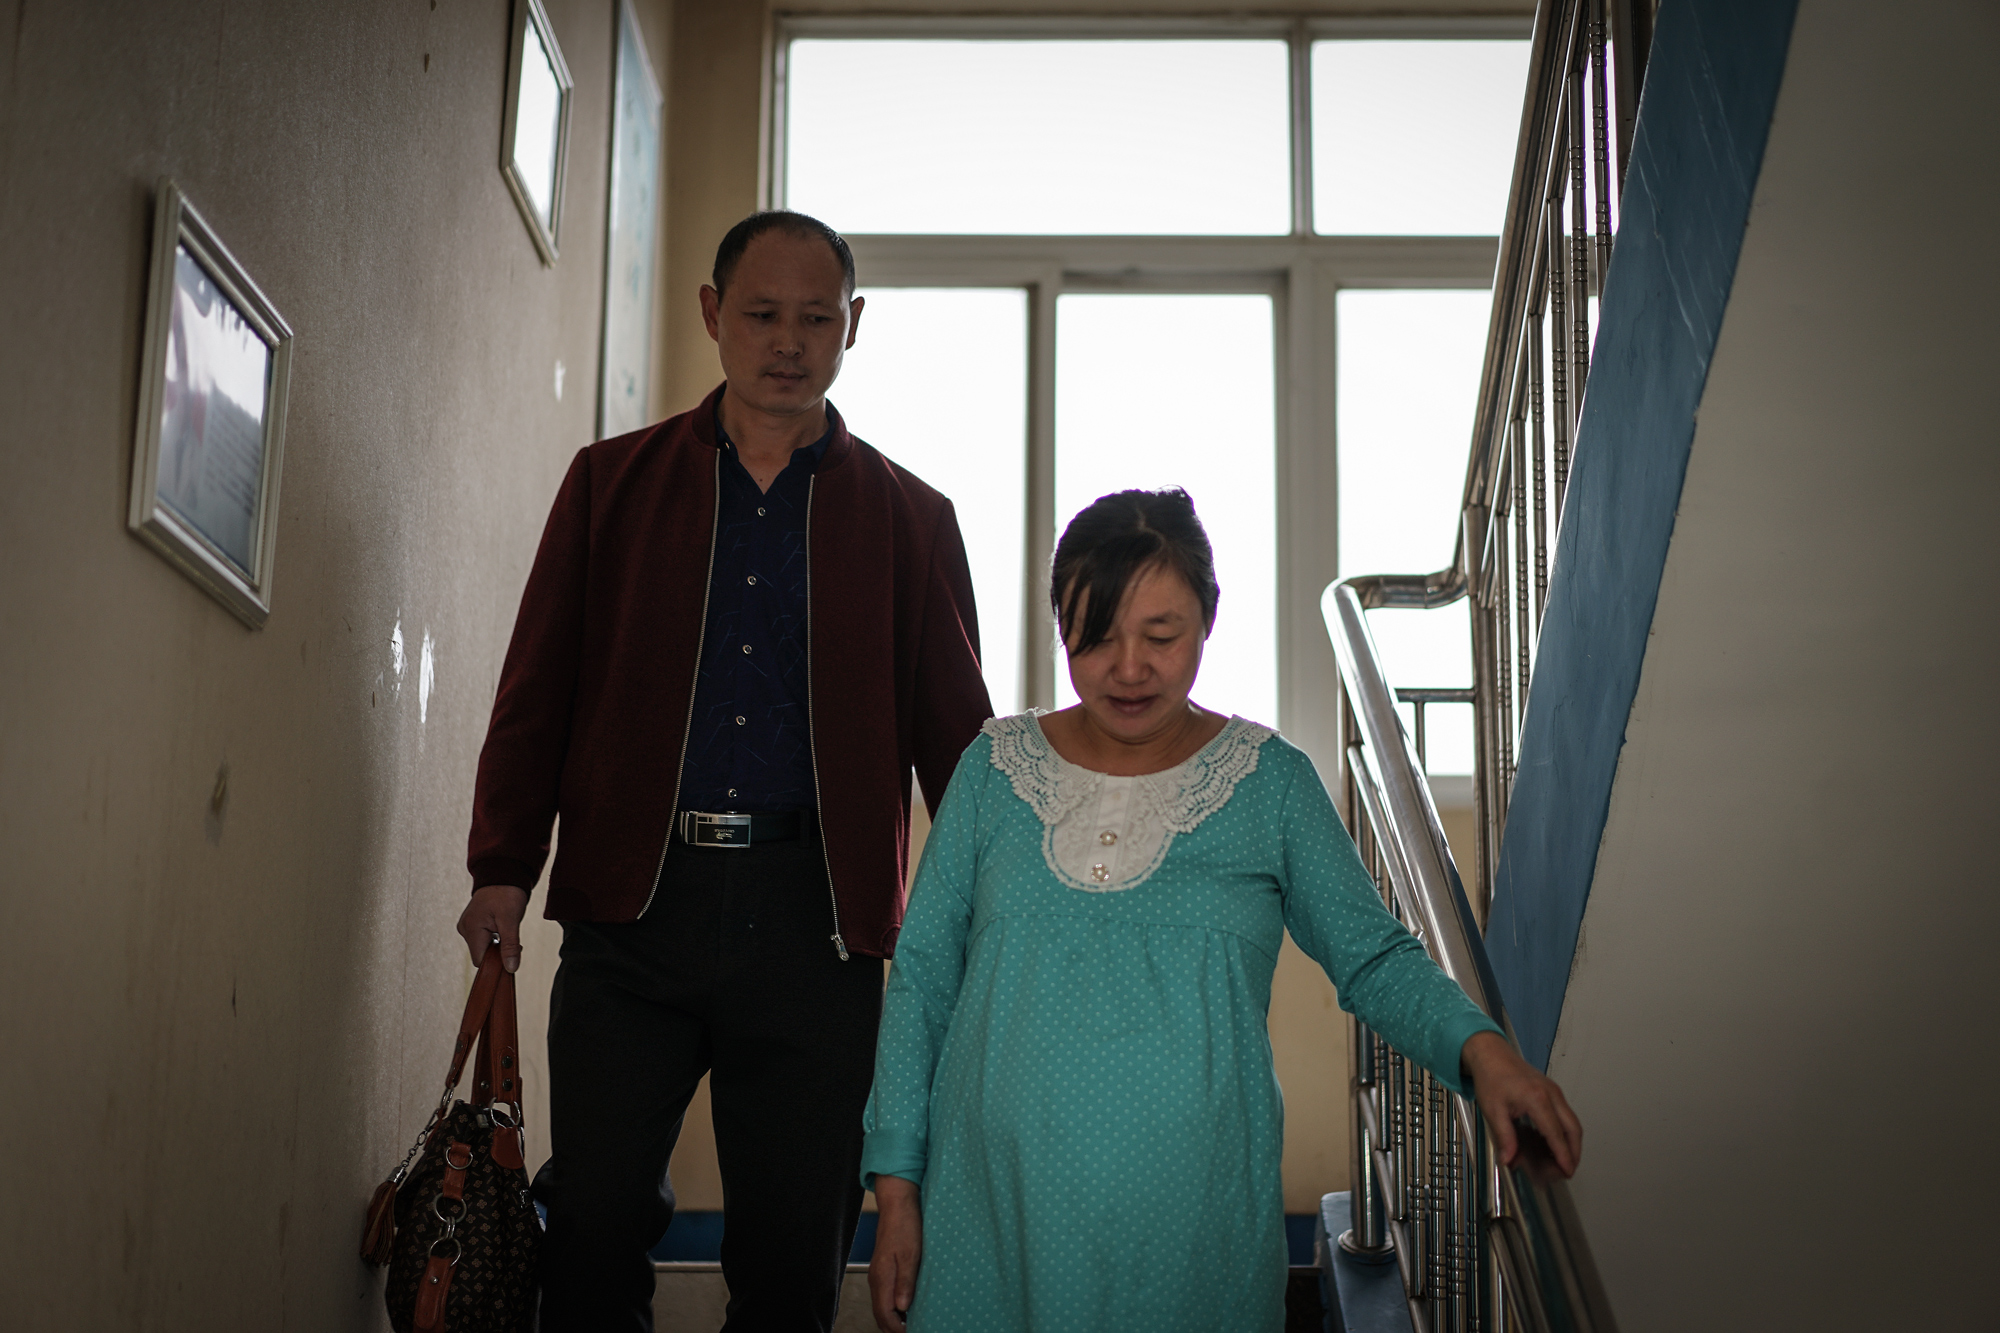 Fangguo watches Zhiying carefully walking downstairs at the hospital, in Wuhan, October 3, 2017. Even though carrying twins meant Zhiying and her babies faced higher health risks during pregnancy, they specifically tried to have twins when they started IVF because they hoped the children could take care of each other after the parents pass away.